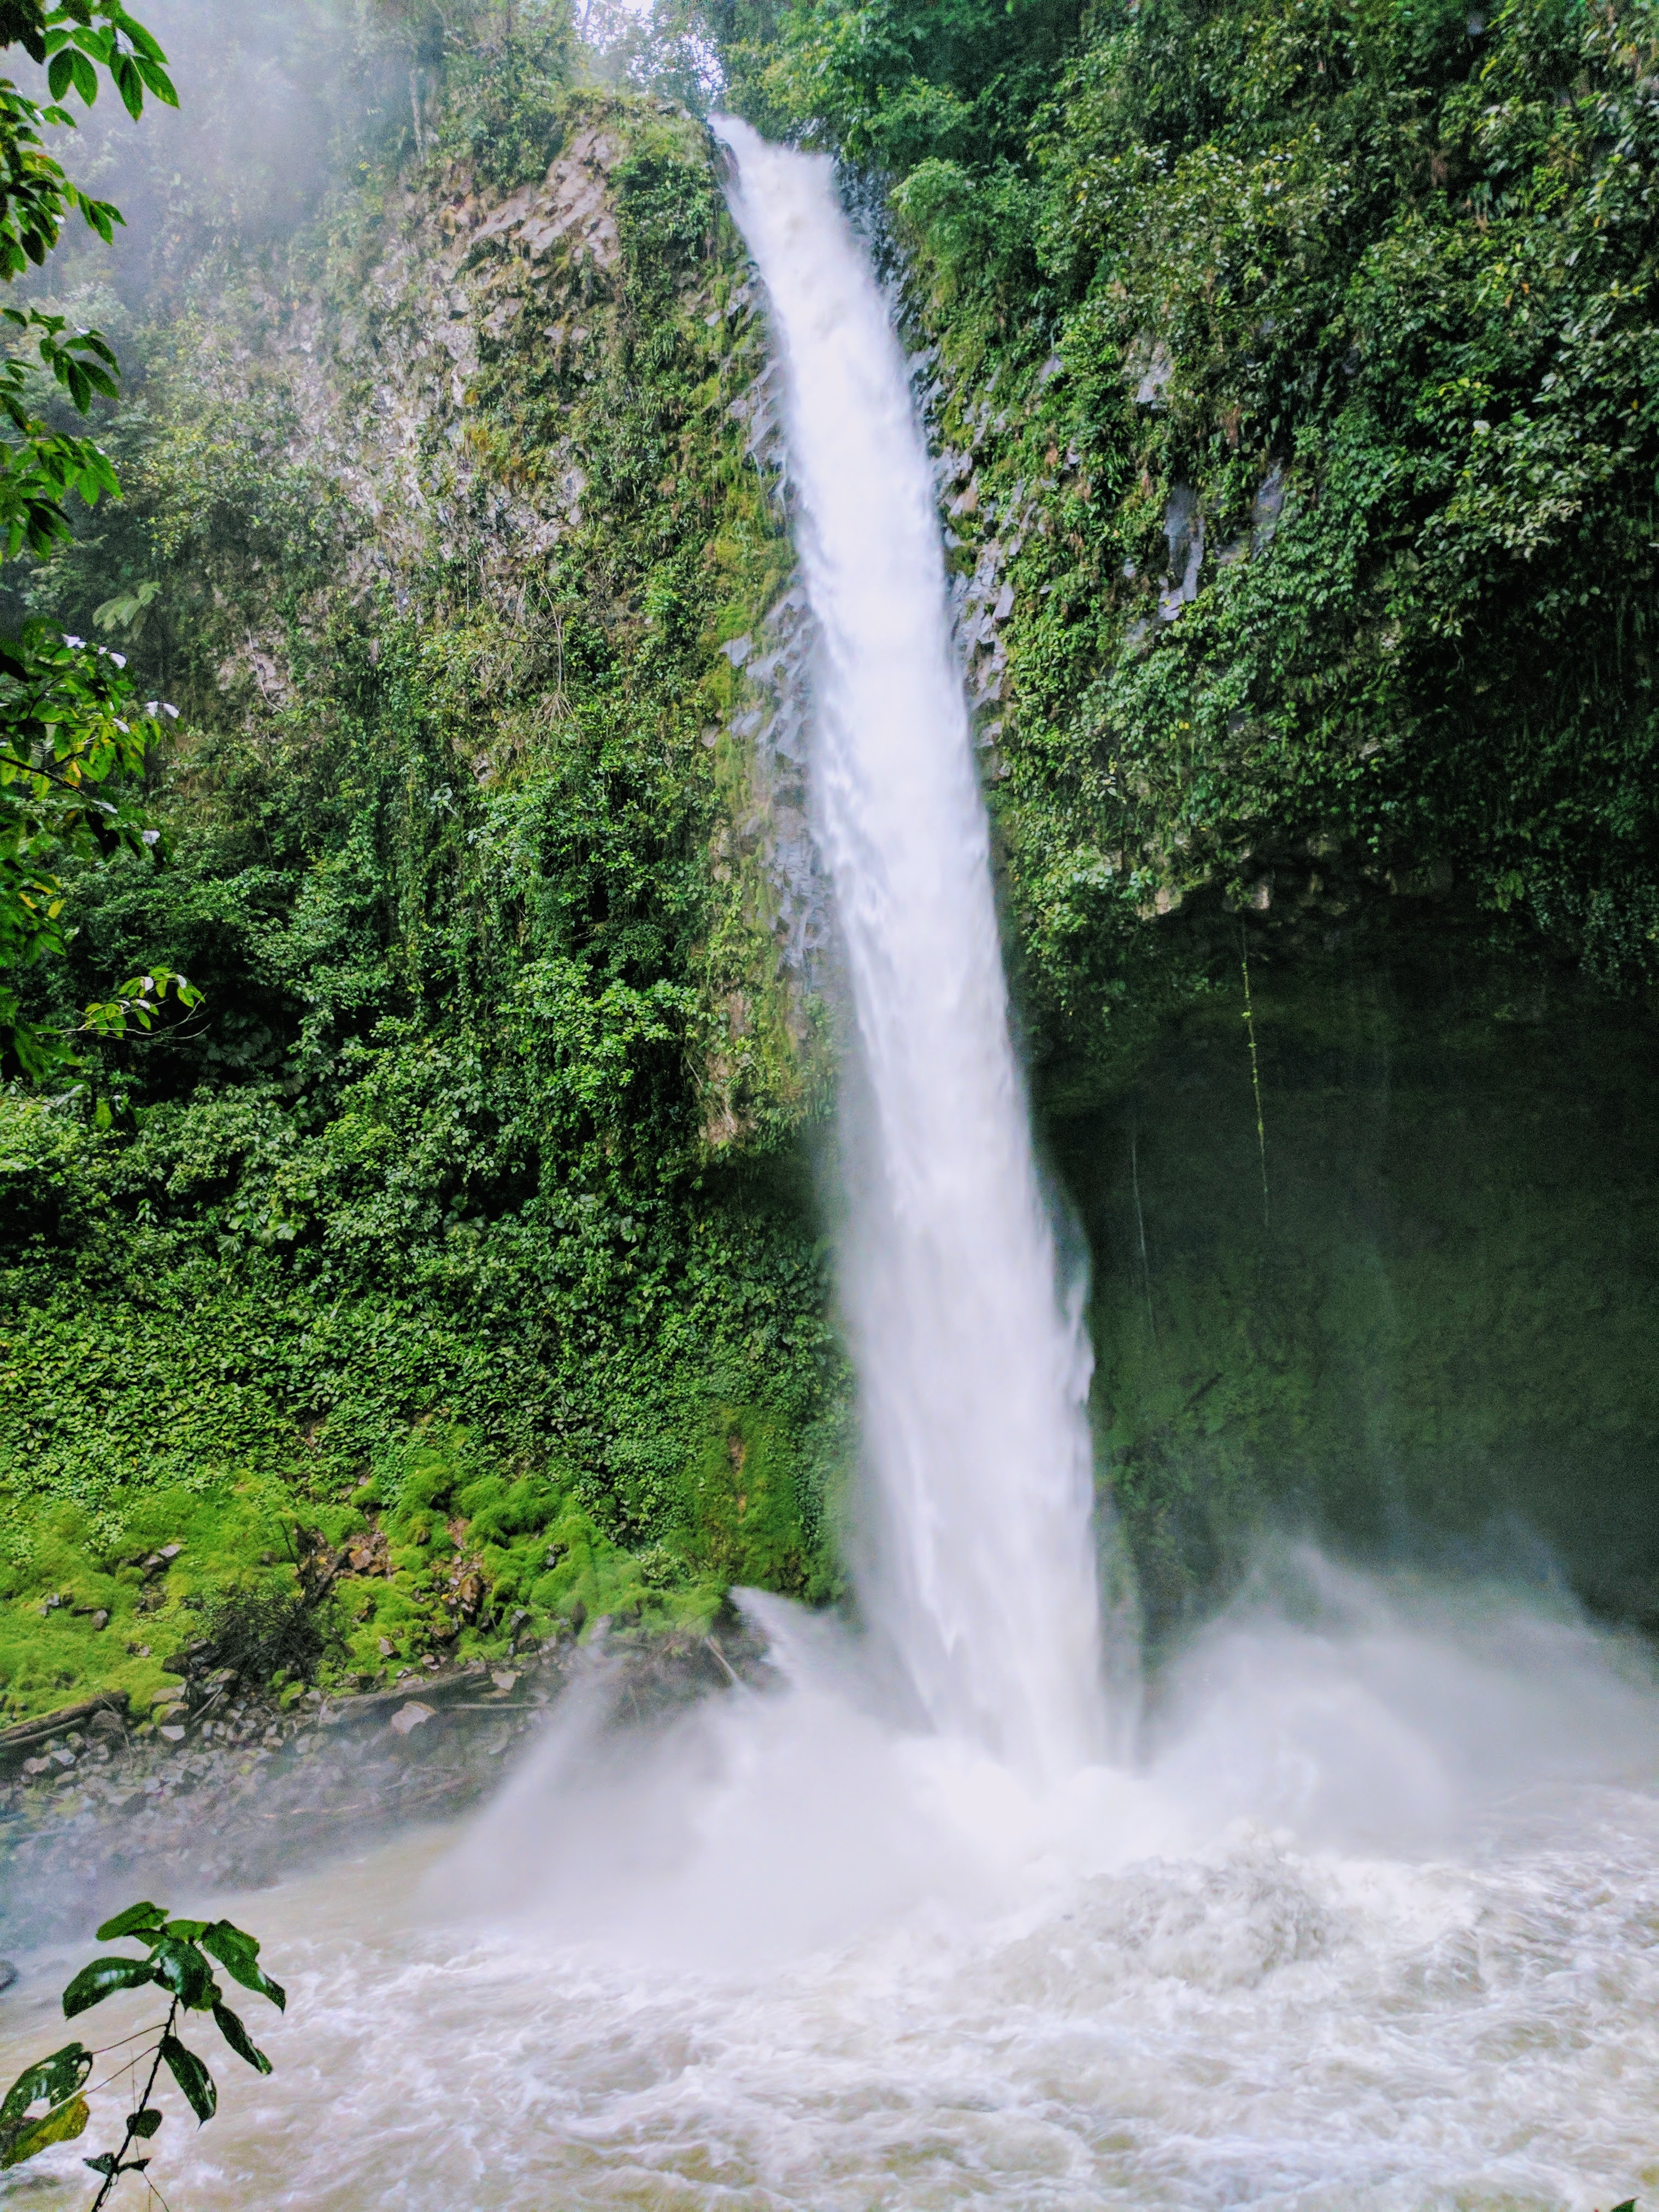 Things to do in Arenal - view at the bottom of a tall waterfall